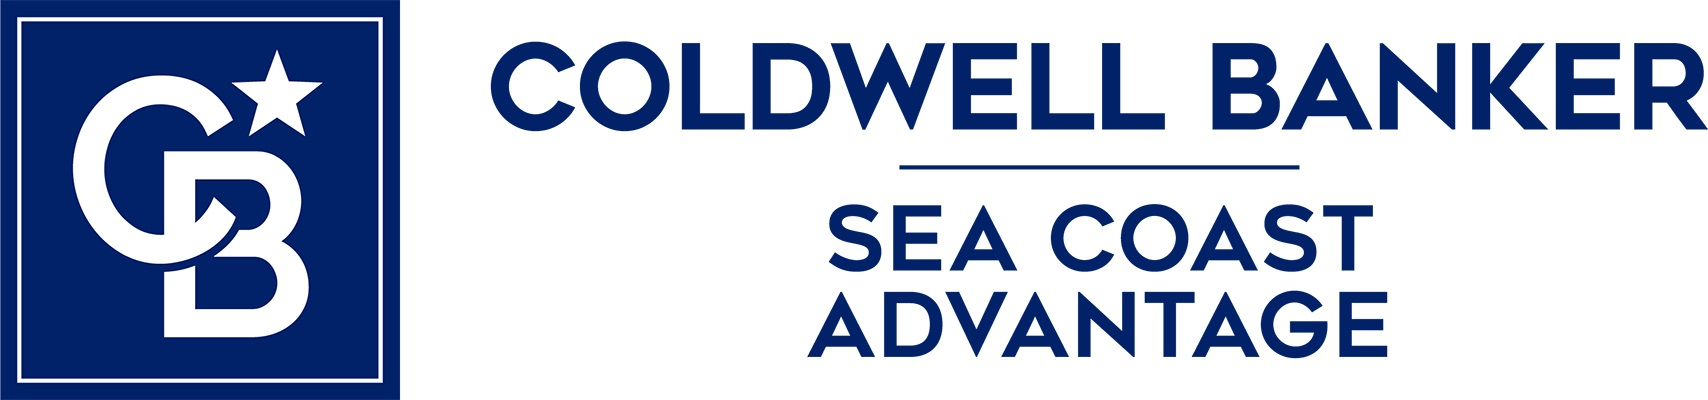 Beth Princiotta - Coldwell Banker Sea Coast Advantage Realty